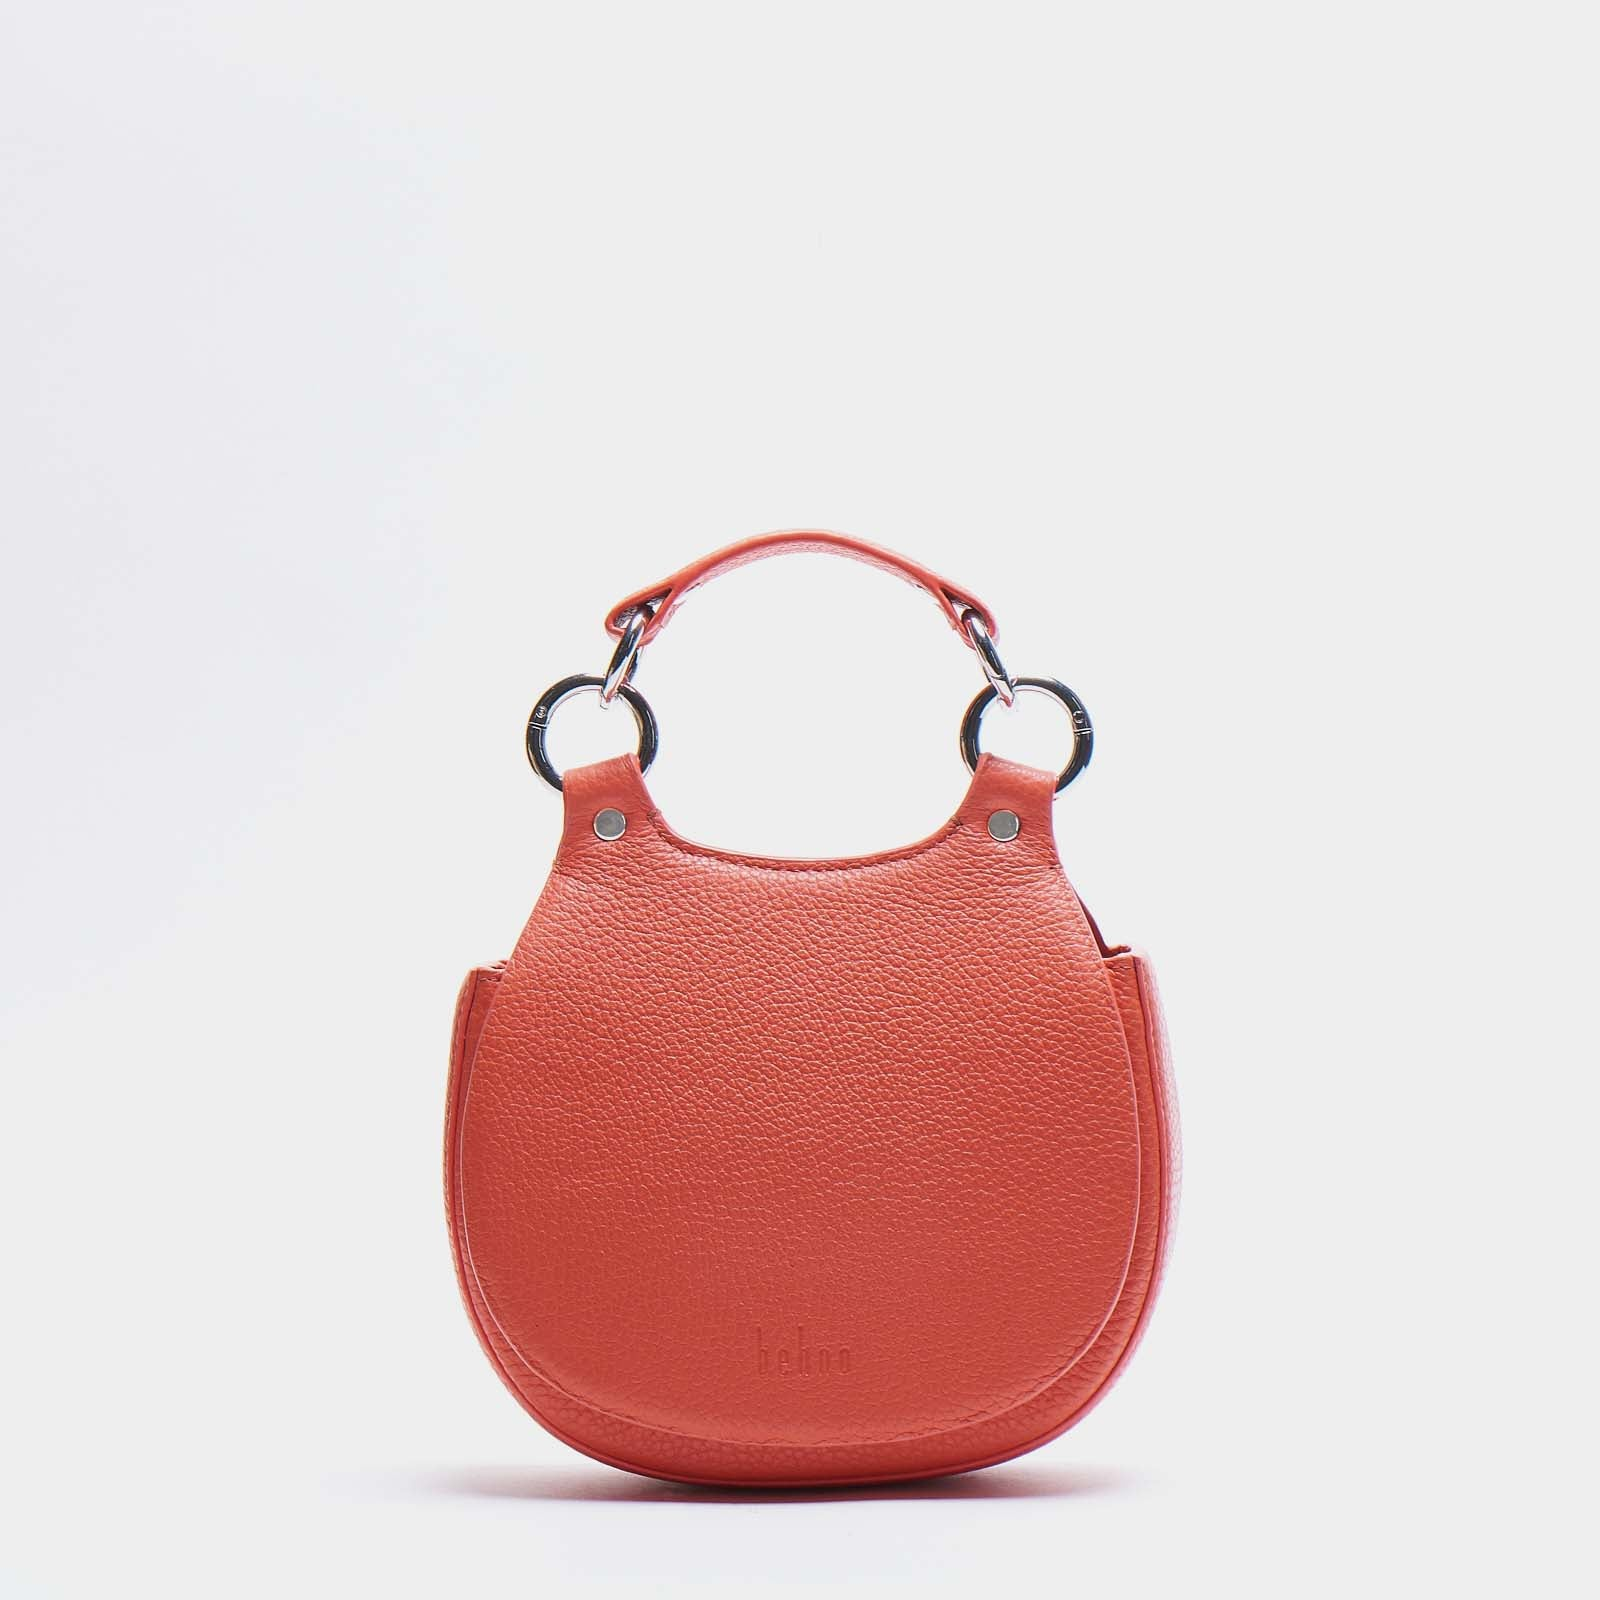 TILDA MINI SADDLE BAG PEBBLE CORAL